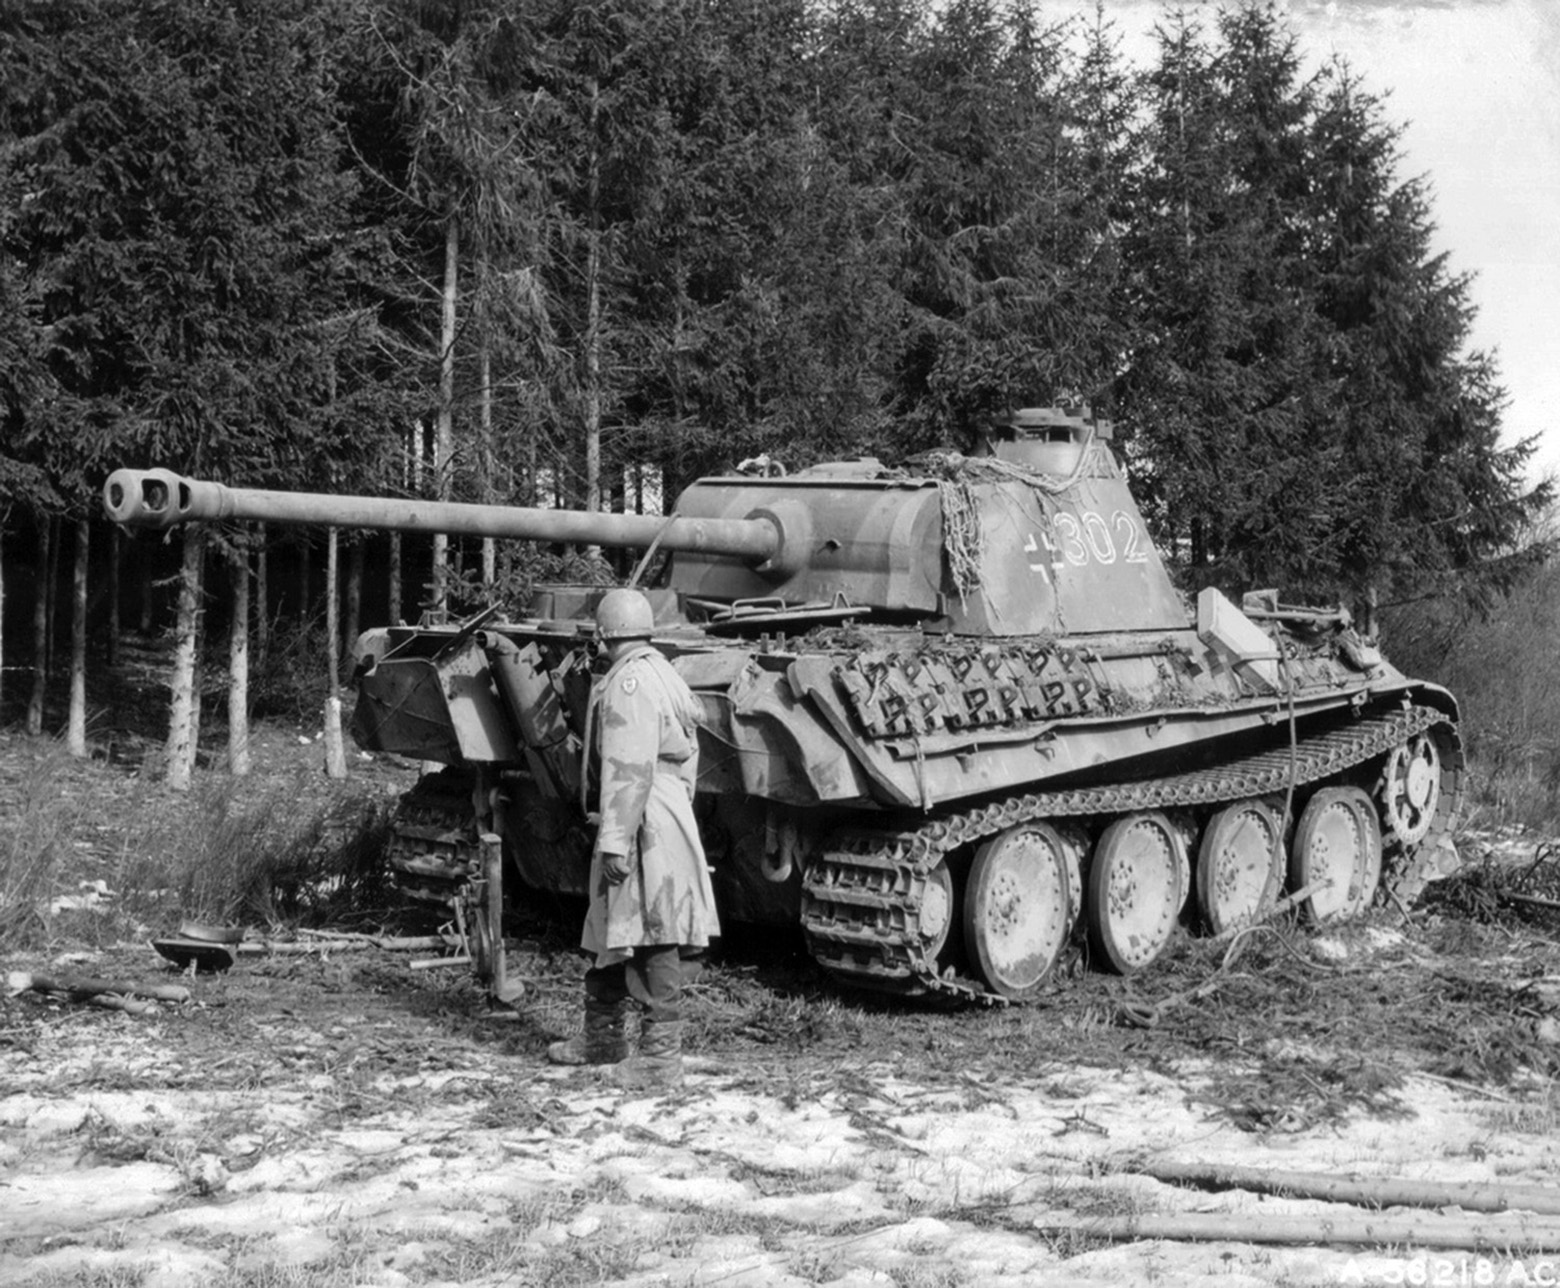 Irzyk explains performance of American tanks in World War II | AUSA